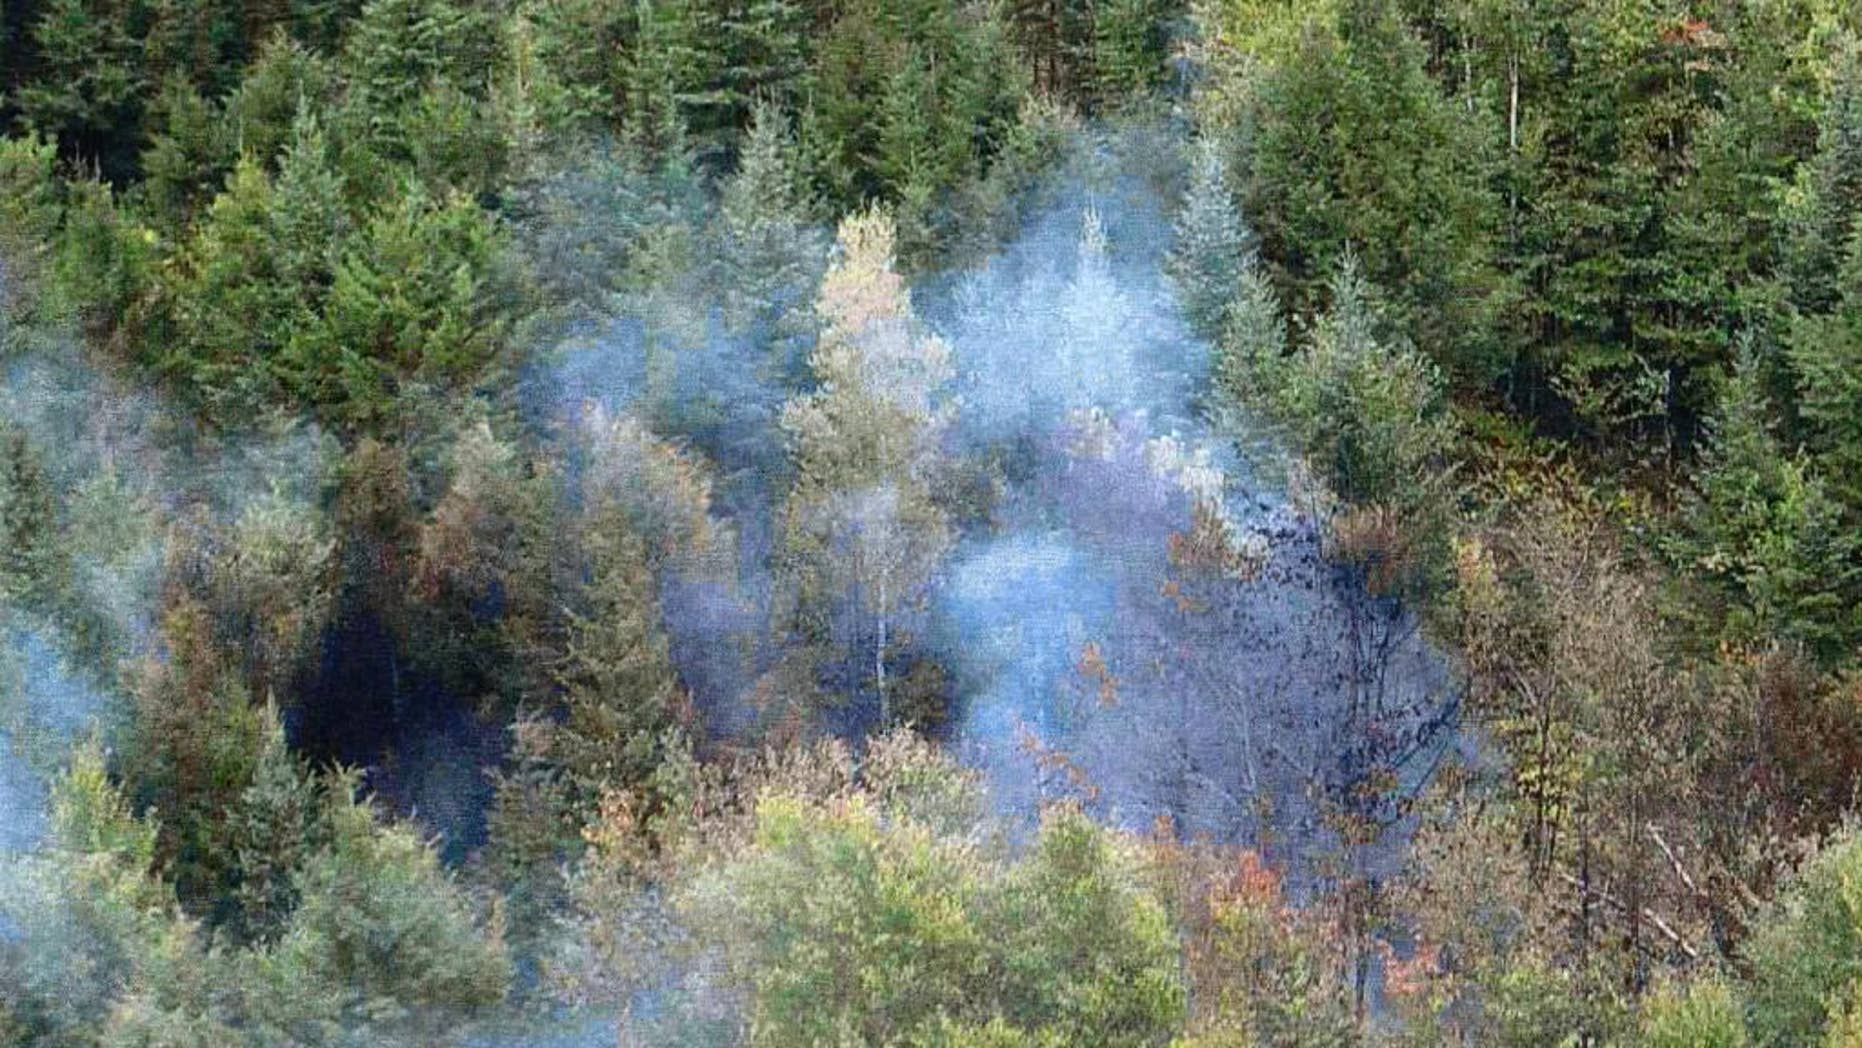 In this Sept. 23, 2009 photo released by the U.S. Attorney's Office, a fire set by fleeing workers burns in a forest where authorities seized $9 million worth of marijuana in Township 37, Maine. Three men convicted in the enterprise that produced one of the biggest marijuana seizures in state history were sentenced ranging from 5-14 years Thursday, April 21, 2016, in U.S. District Court in Bangor, Maine. (U.S. Attorney's Office via AP)